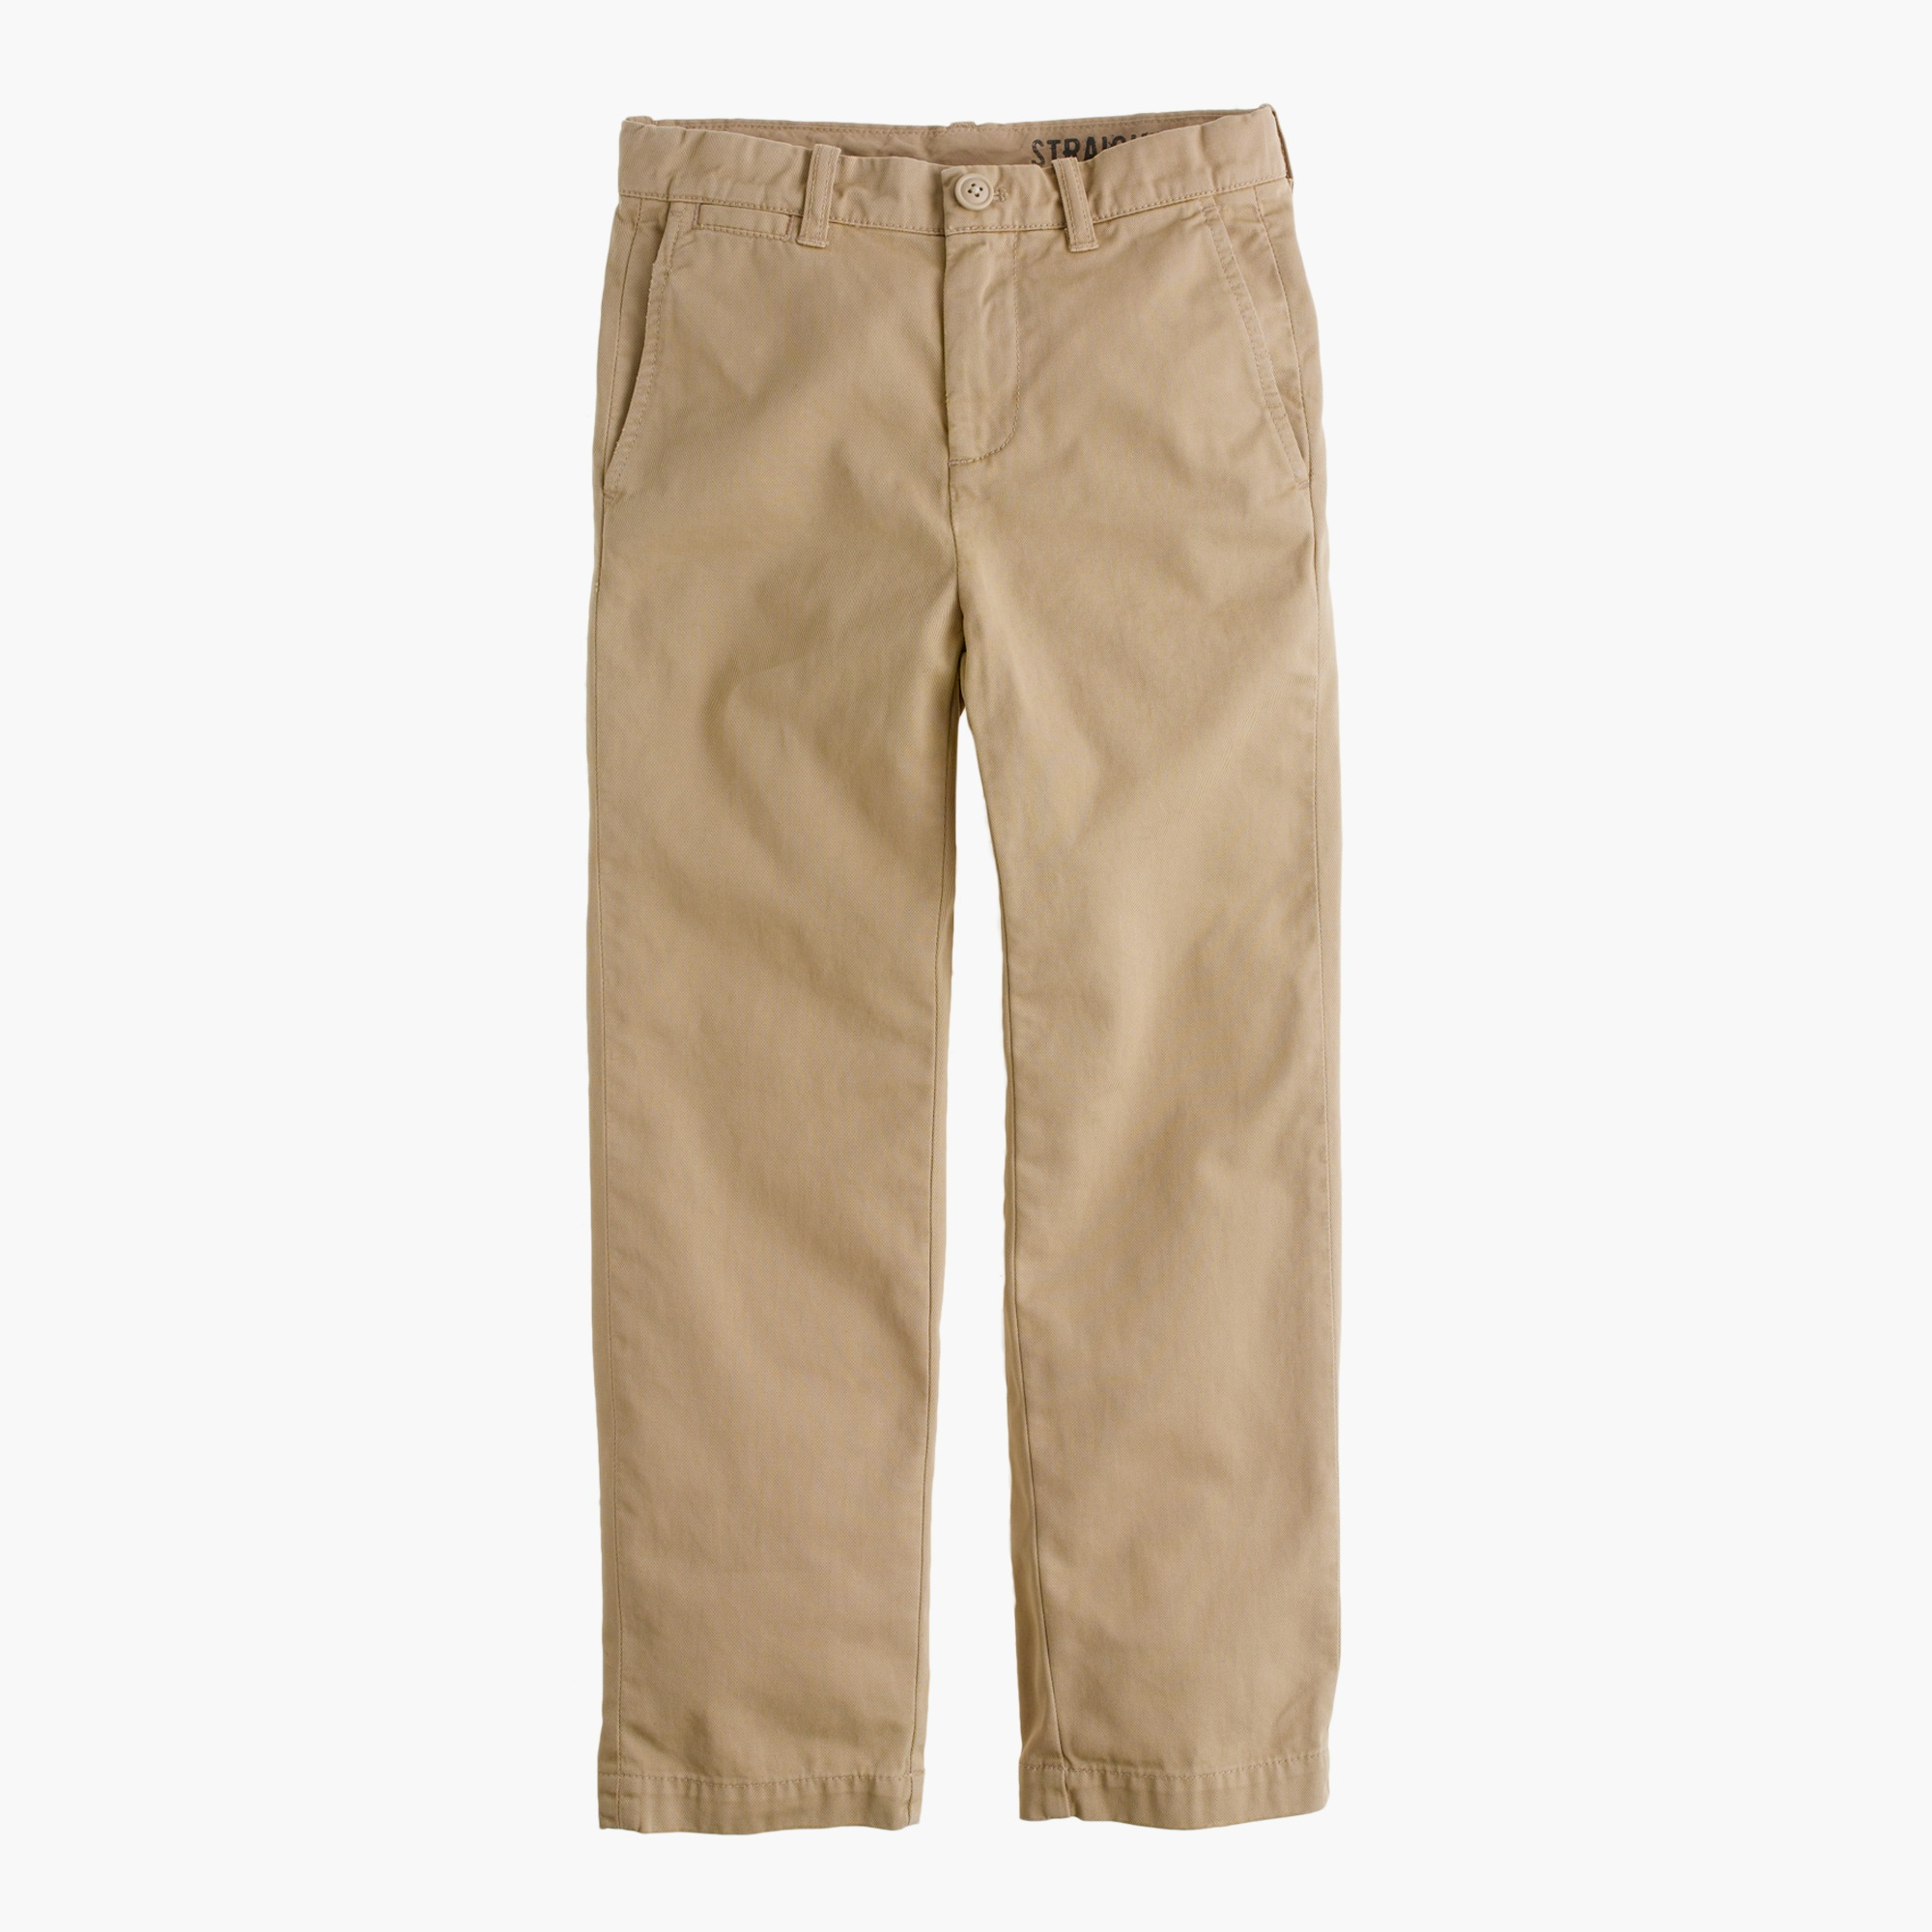 Image 1 for Boys' garment-dyed chino pant in straight fit